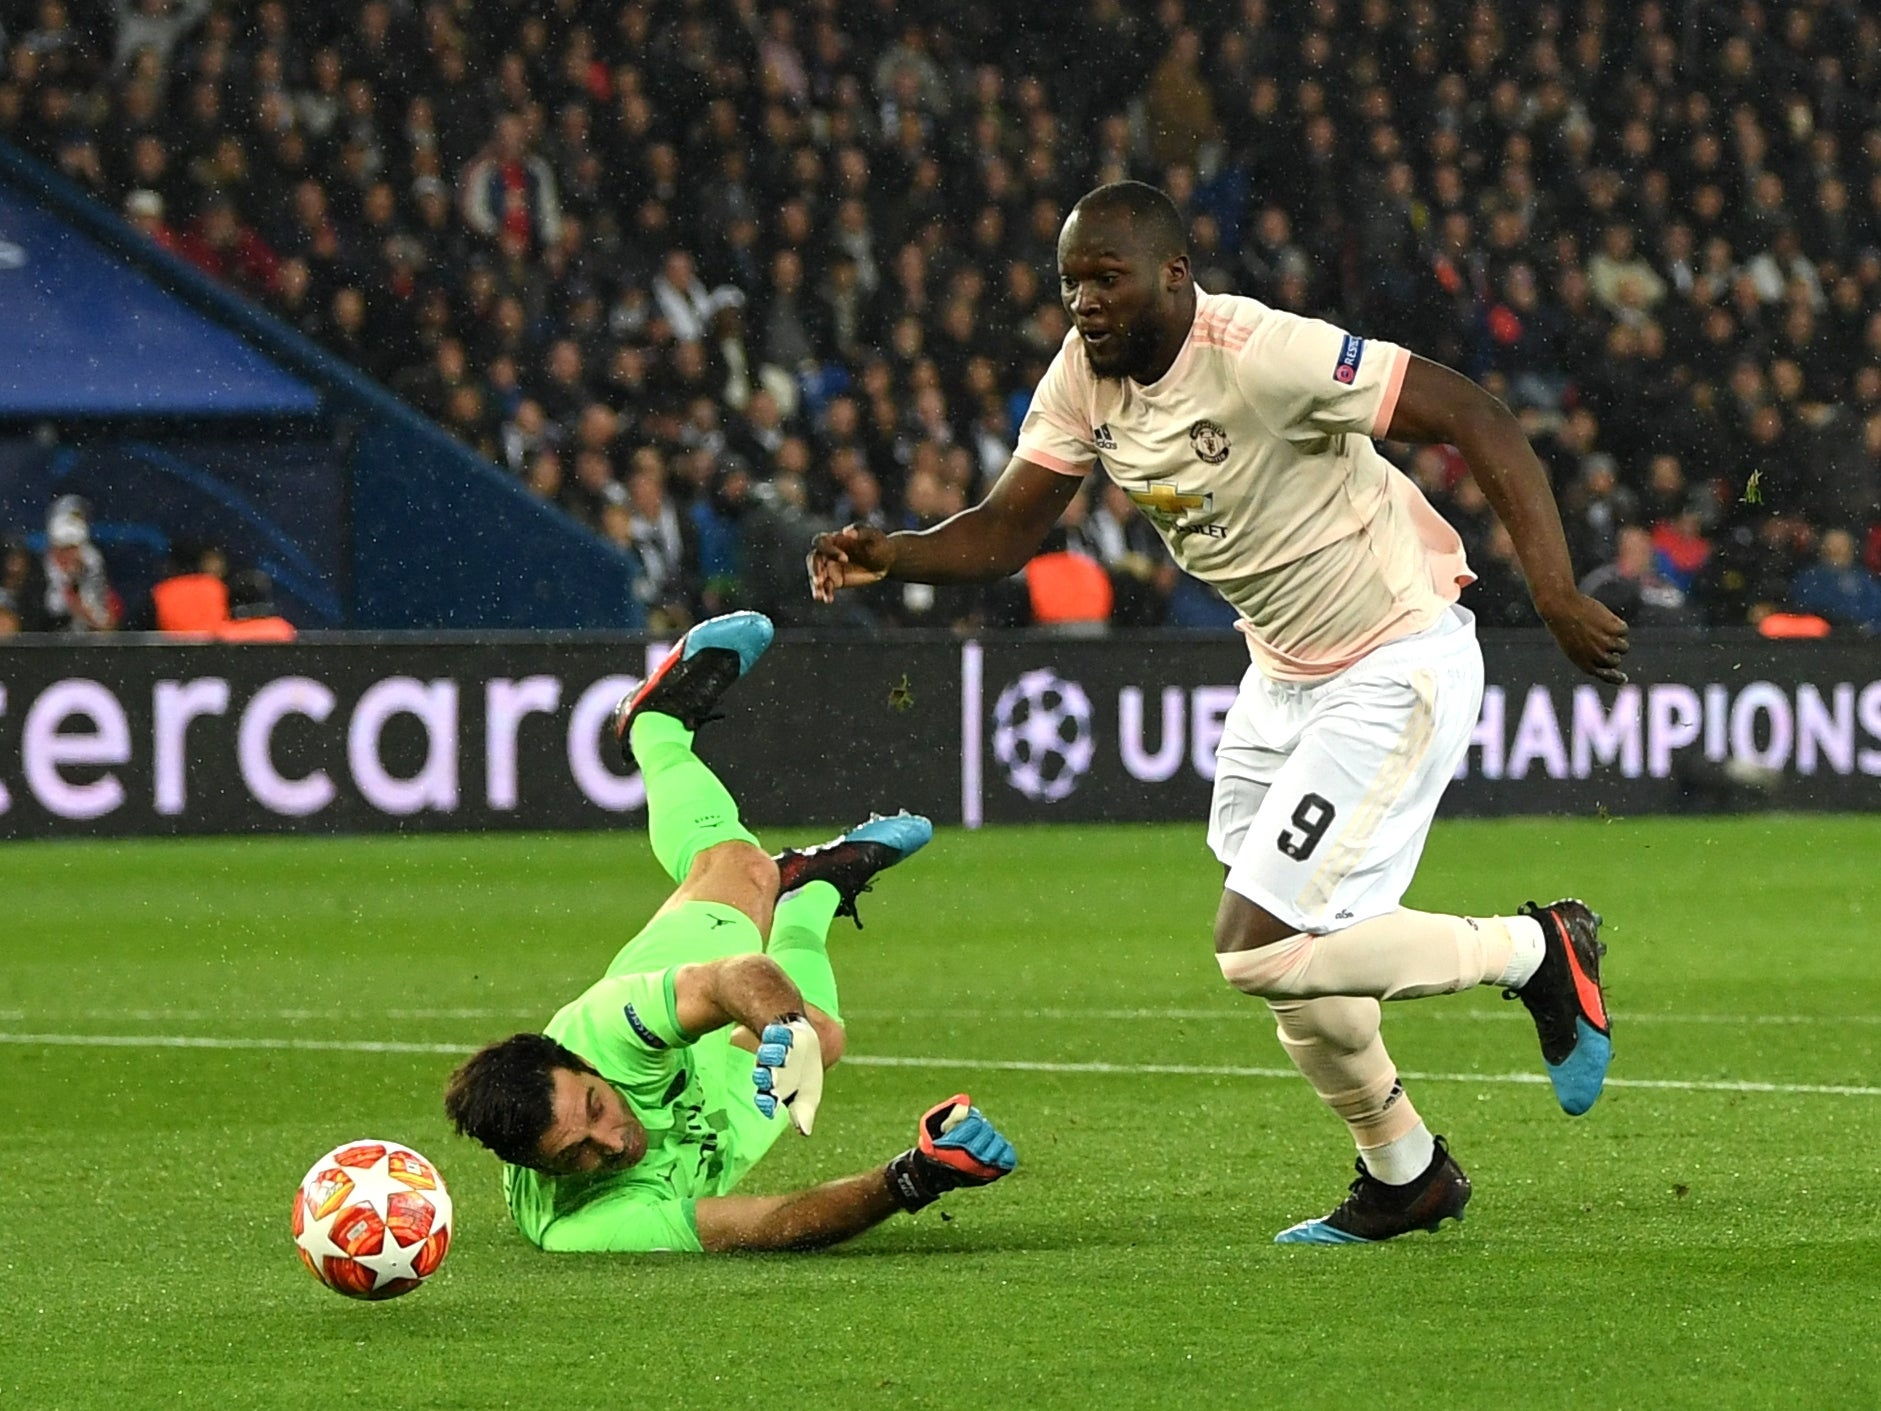 PSG Vs Manchester United Five Things We Learned As Marcus